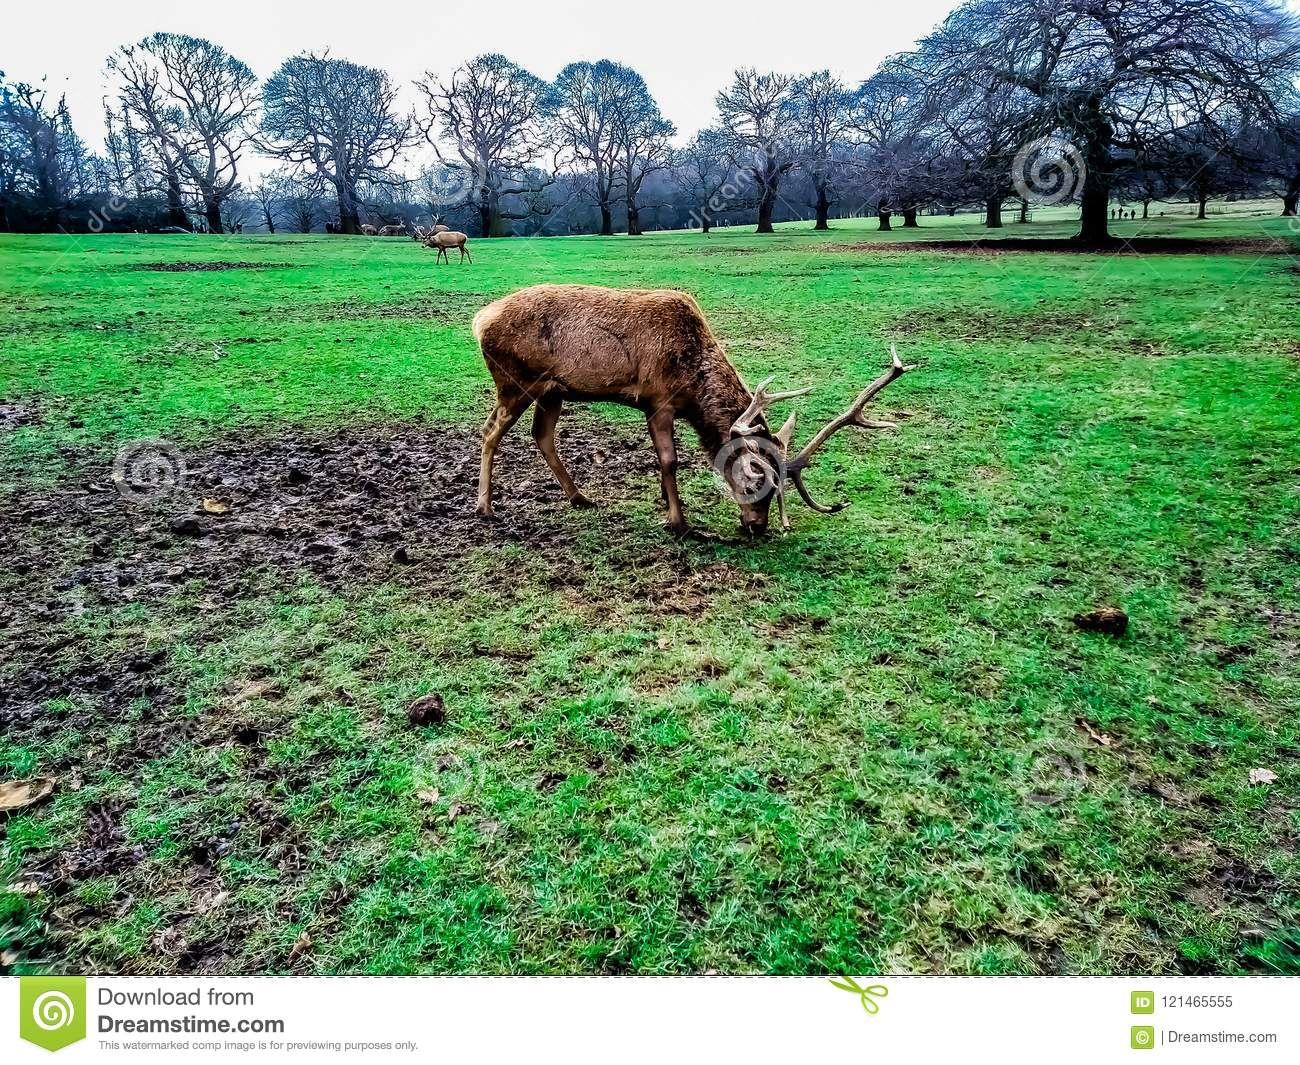 Deer eating grass in the Wollaton Hall Park in Nottingham, United Kingdom.